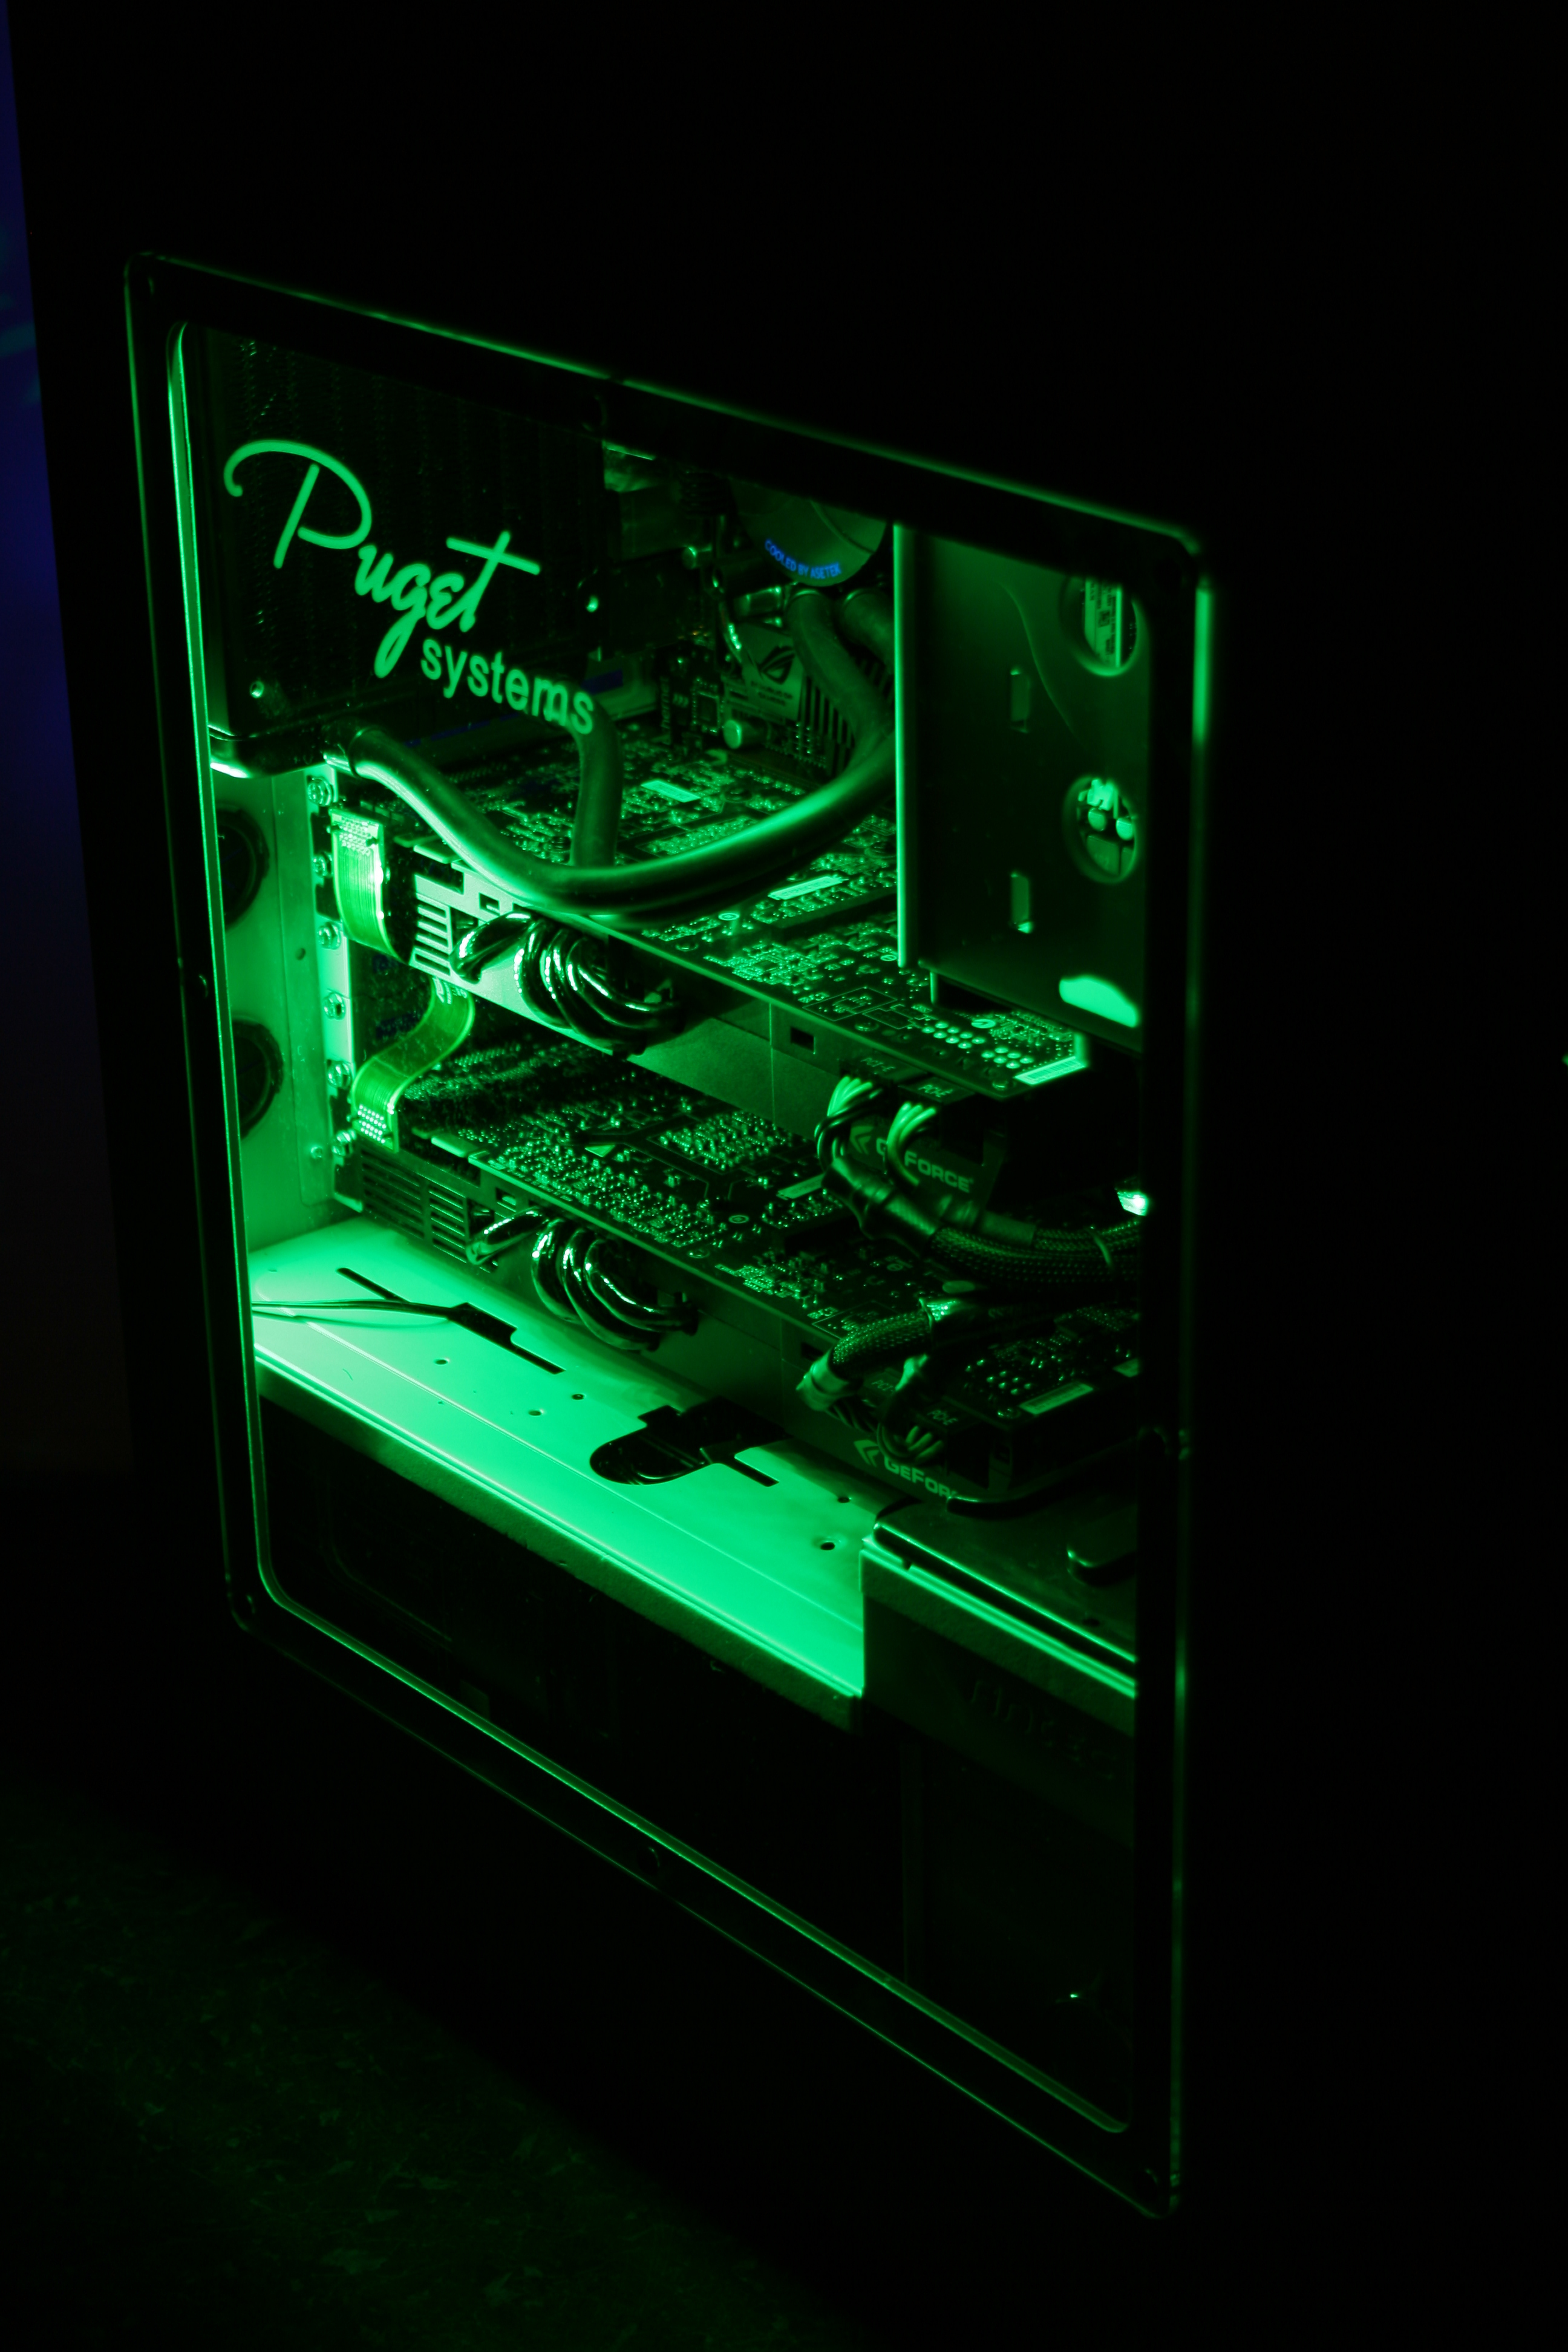 computer basspulse dual desktop with works lrg stereo led glow gg callouts lights drivers system computers itm lighting glowing green gogroove pc apple sound speakers speaker laptop